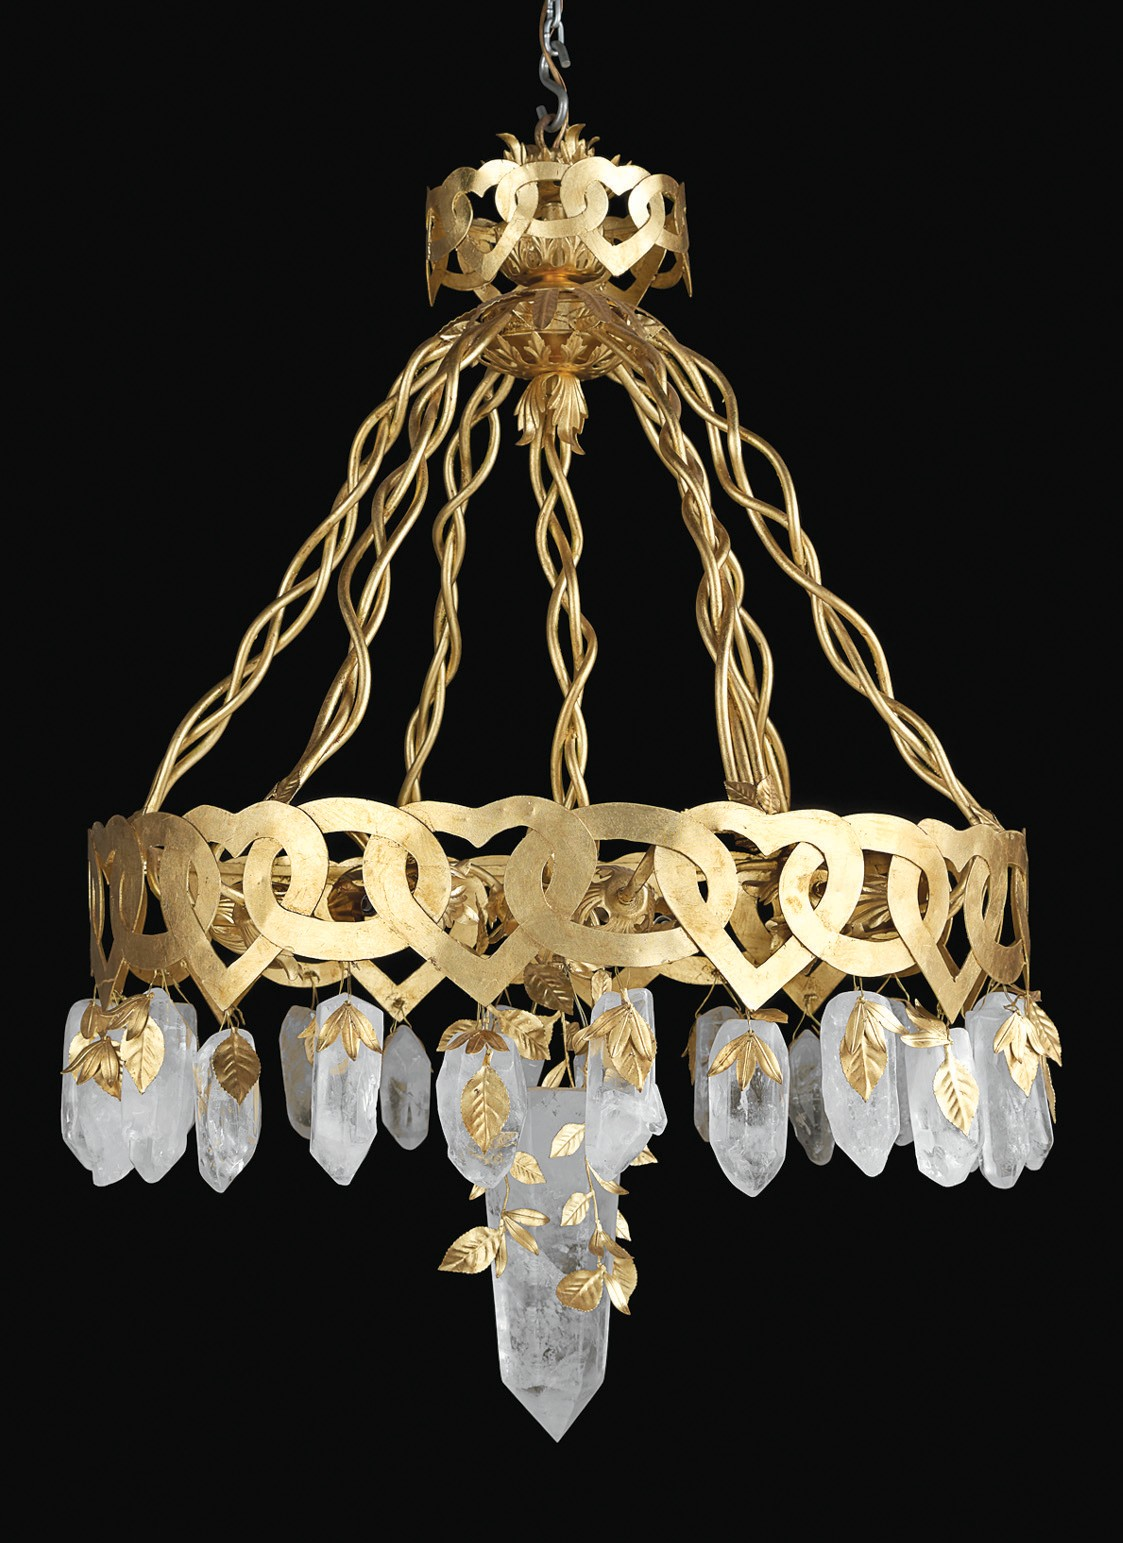 Coco Chanel Designed Chandeliers Too Charlotte County Florida Weekly - Used chandelier crystals